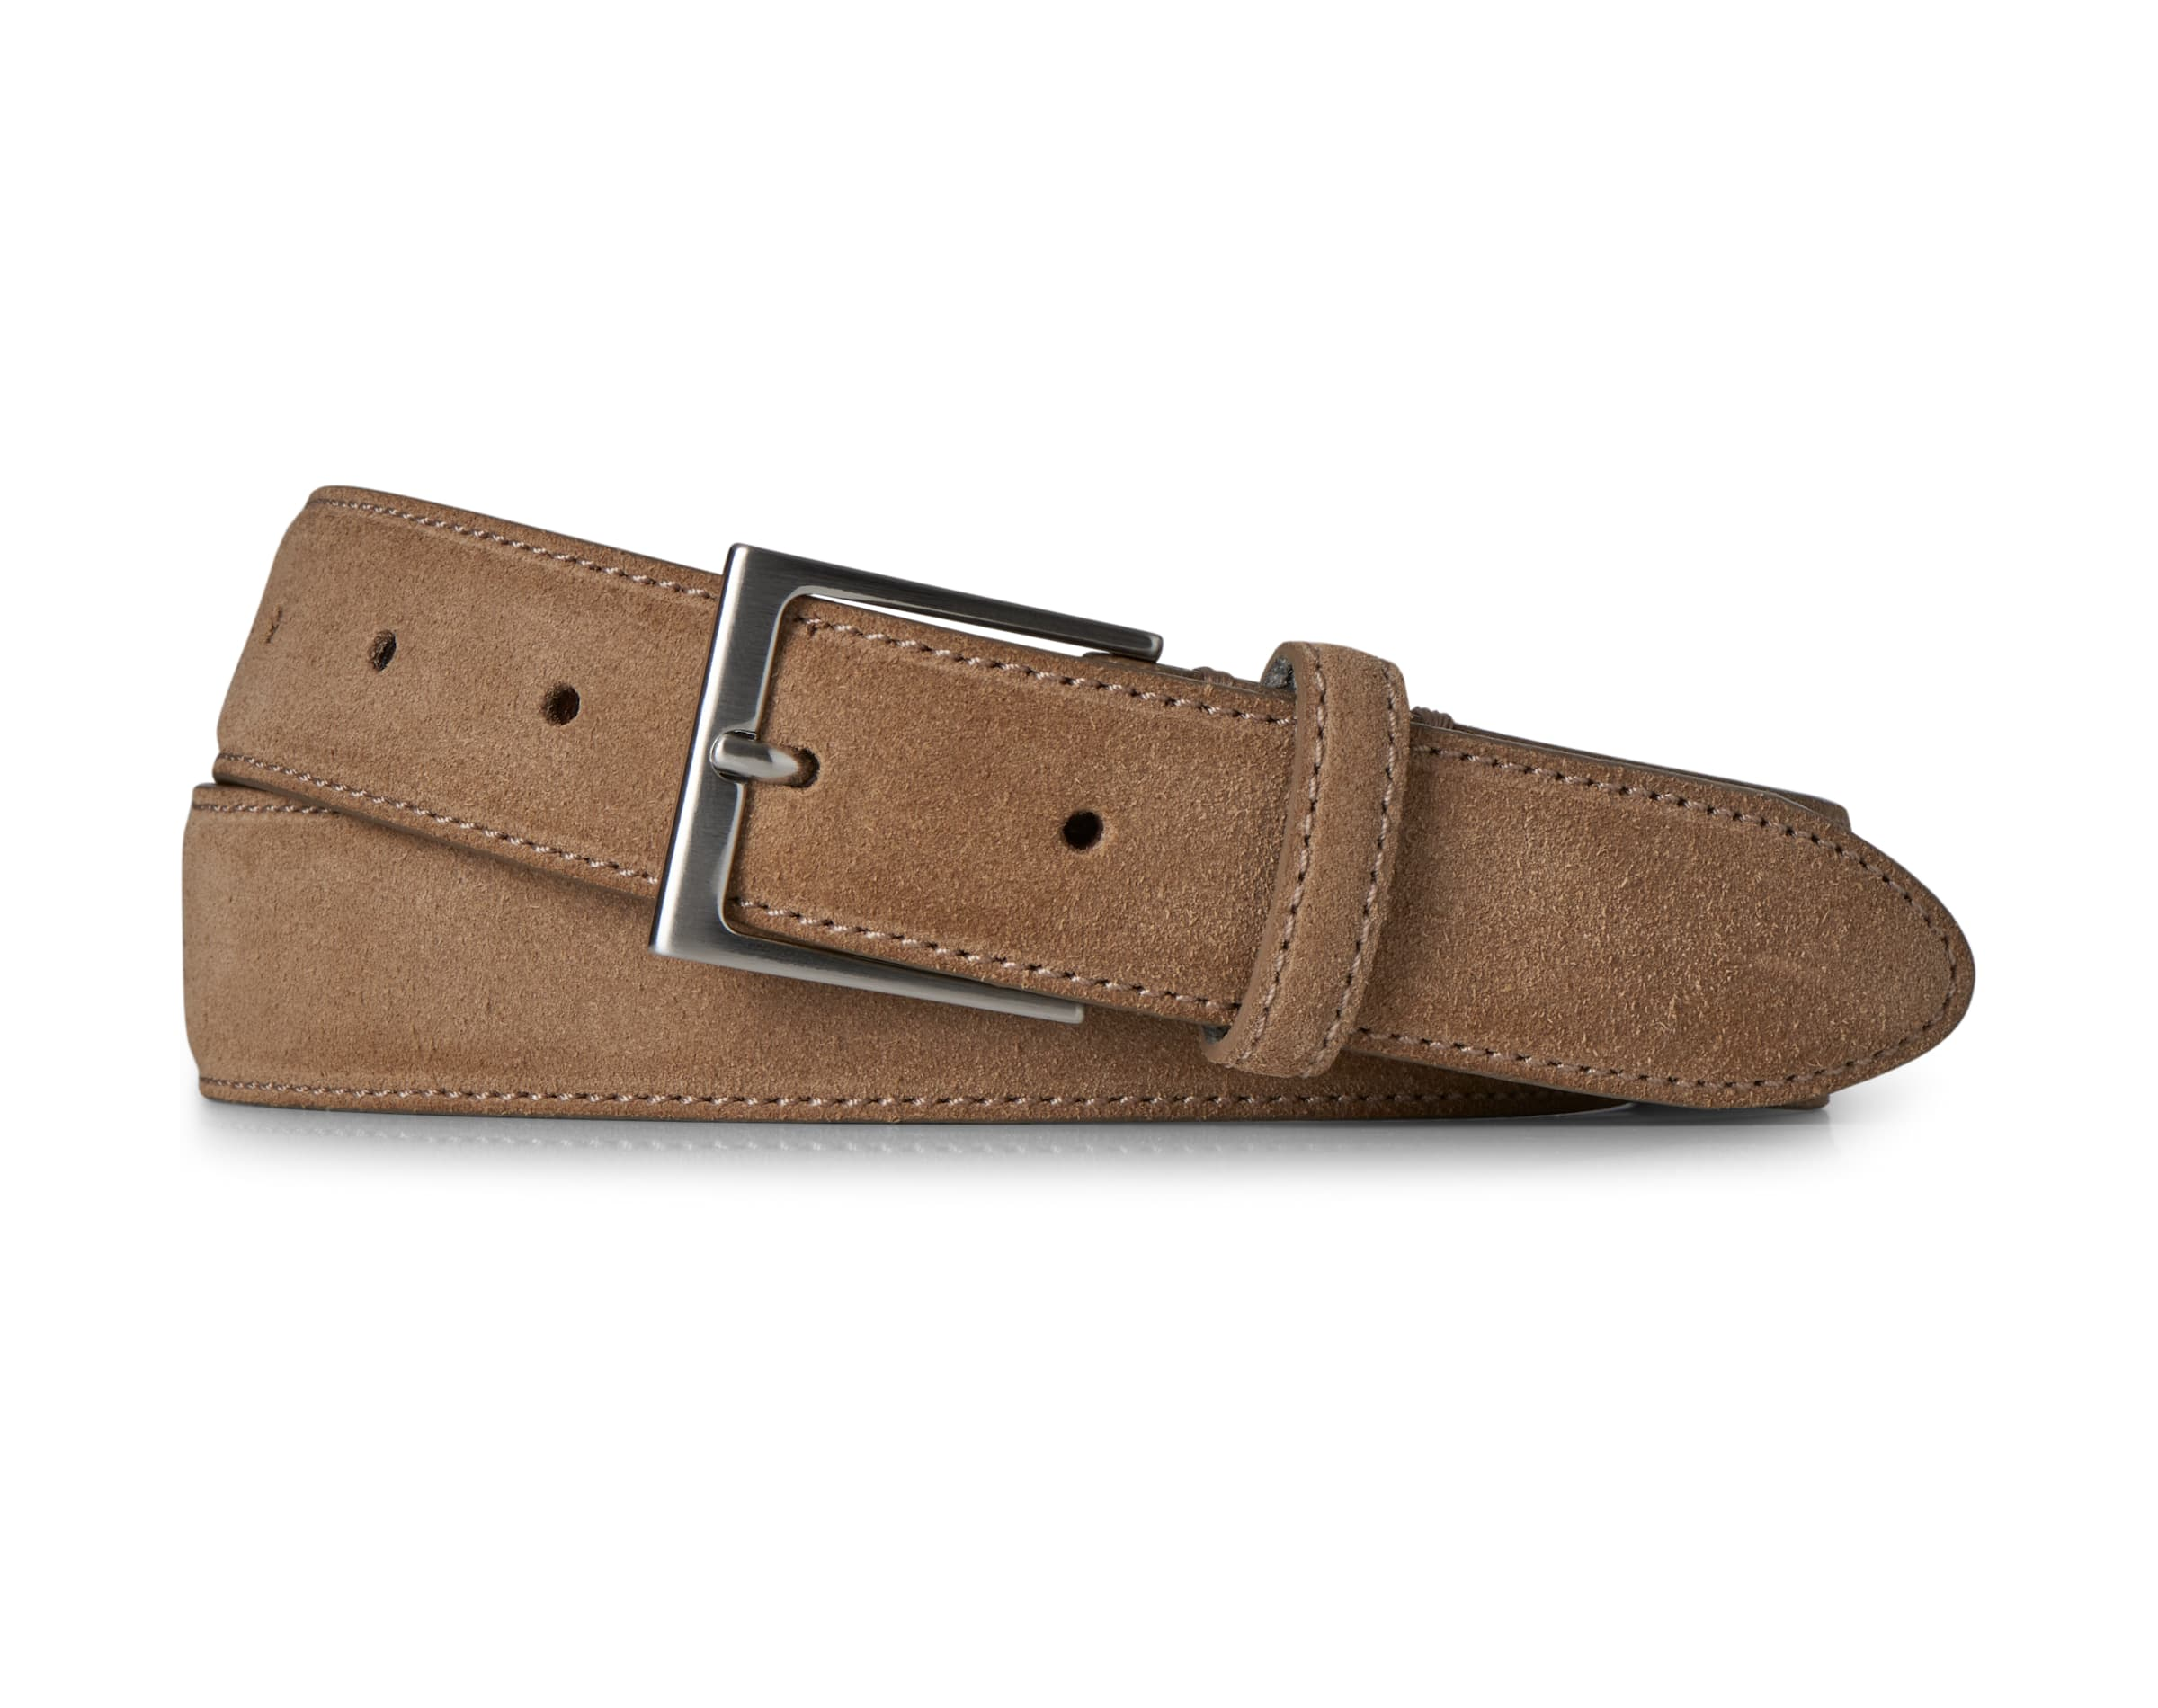 Brown Belt A18101 Suitsupply Online Store